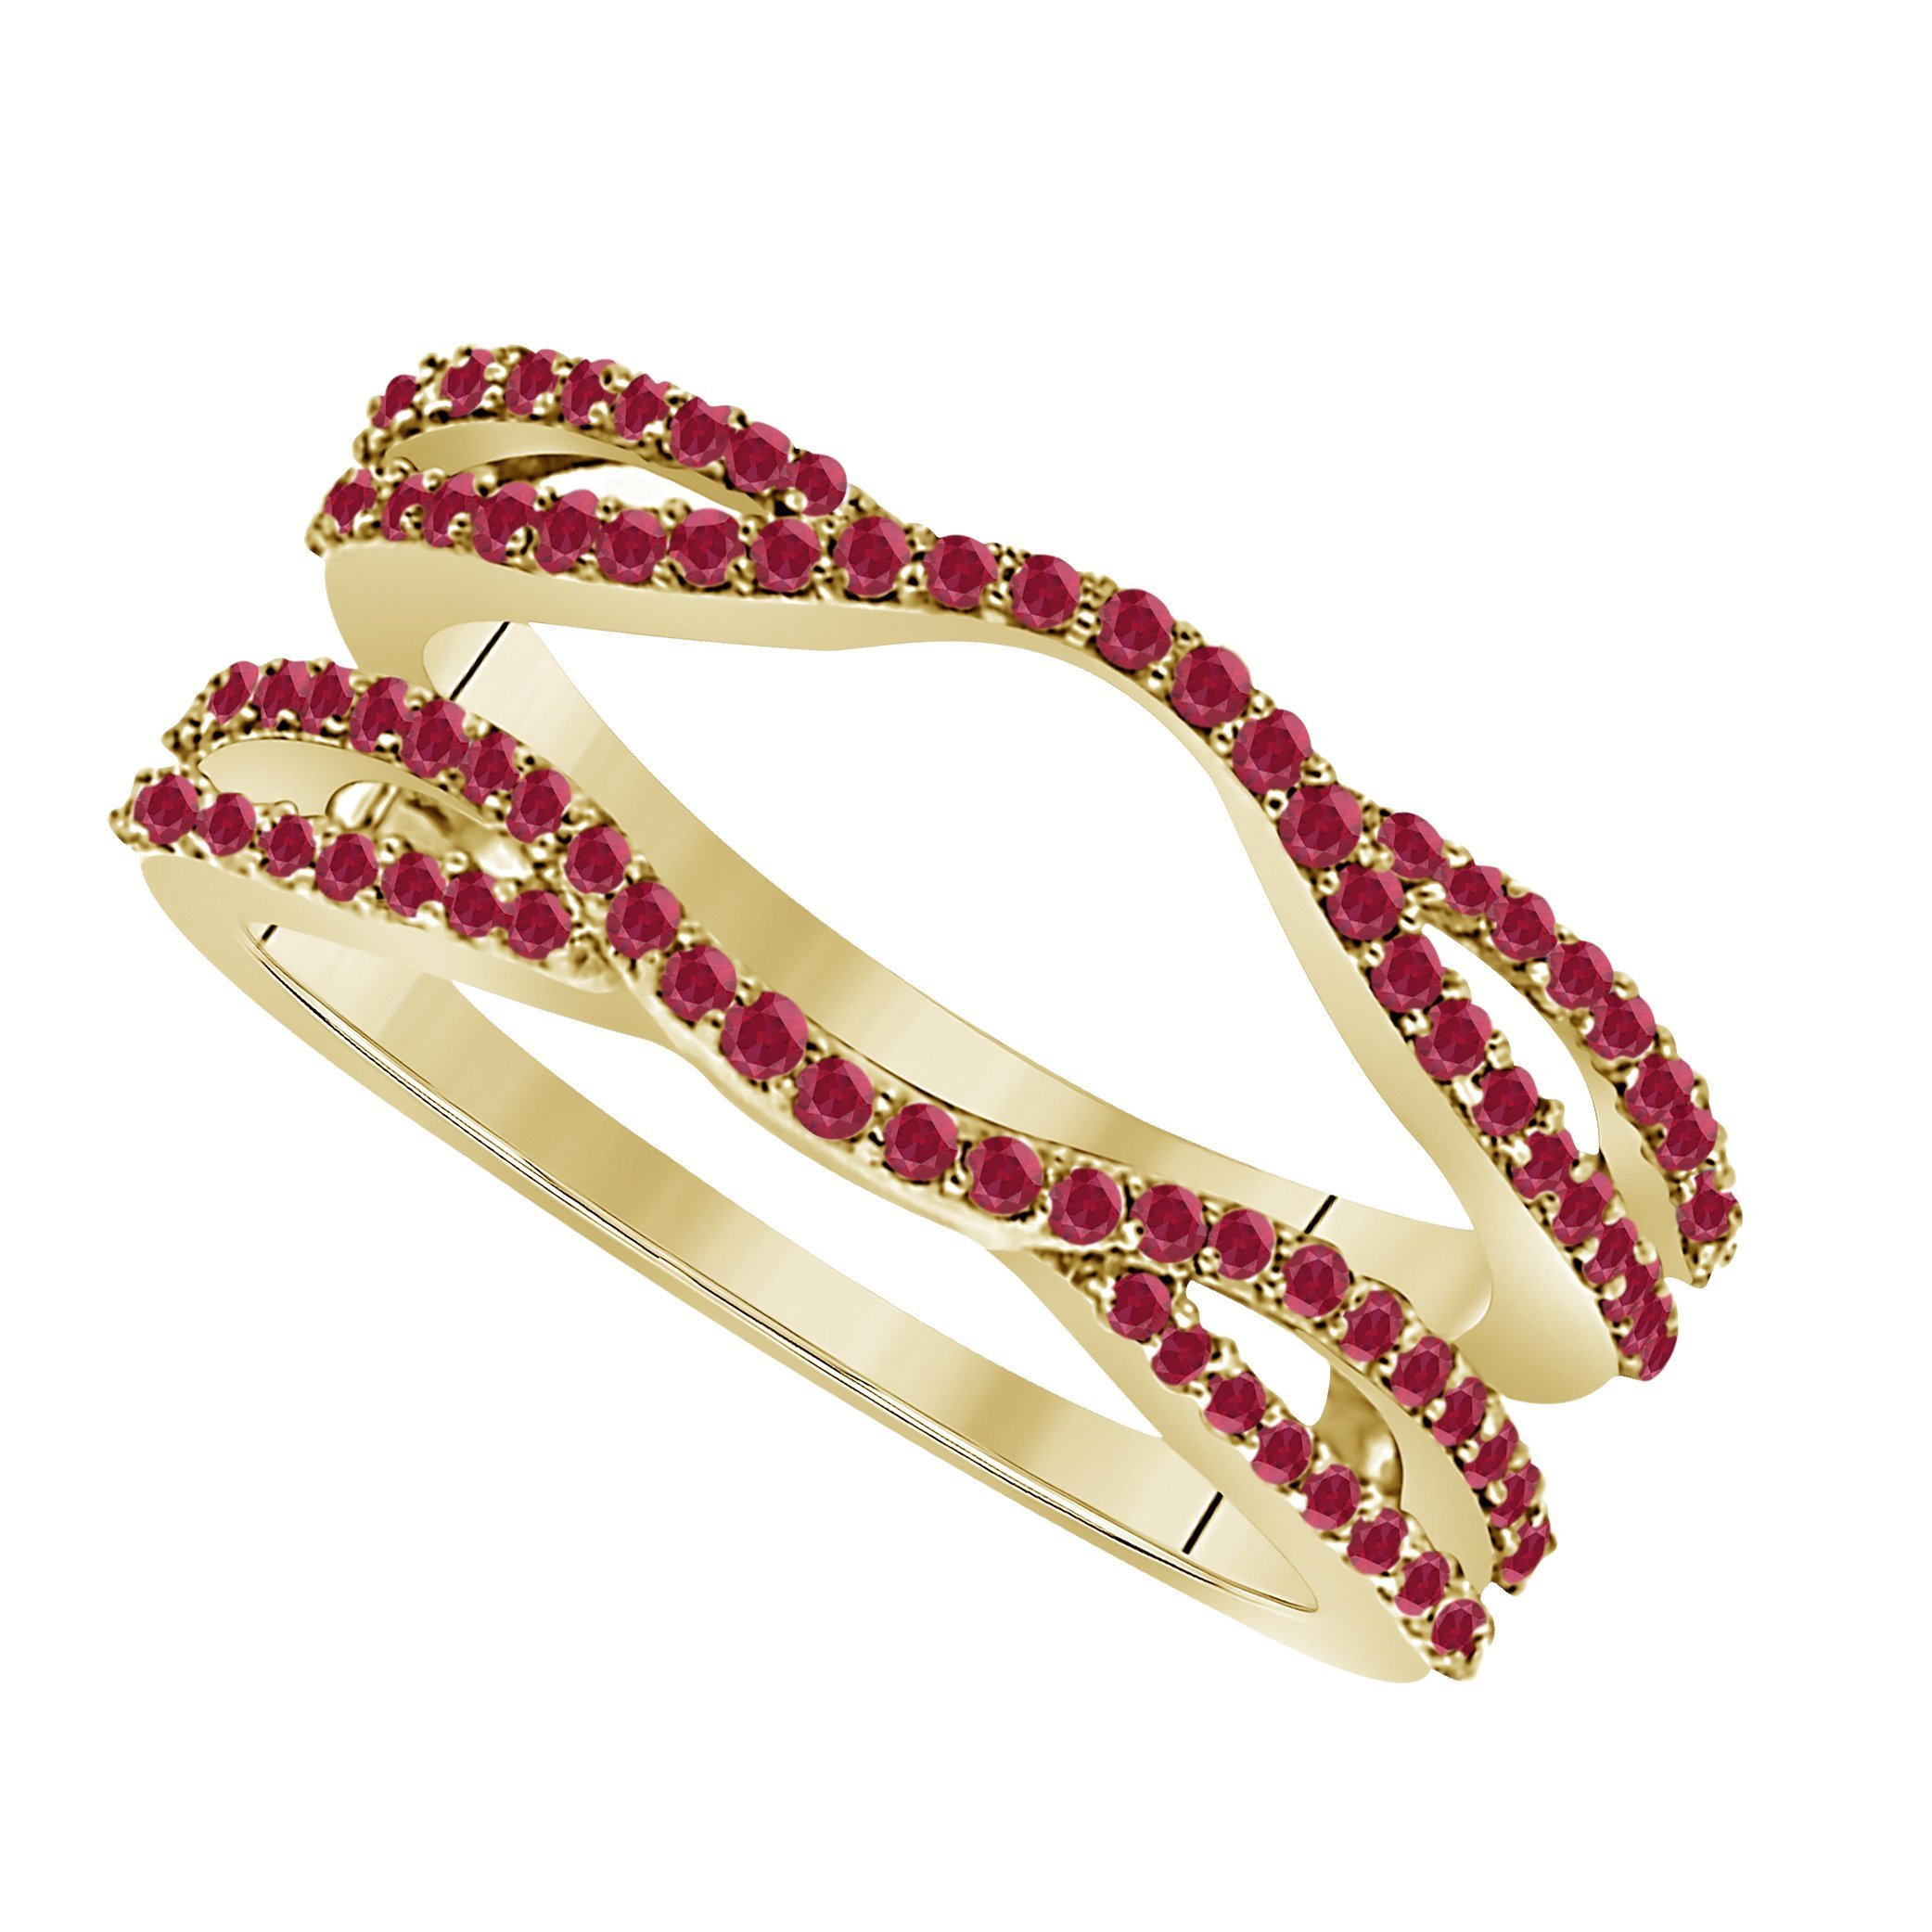 Star Retail 1/2 Ct 14K Yellow Gold Finish Round Cut Lab Created Red Ruby Ladies Anniversary Wedding Band Enhancer Guard Double Chevron Ring